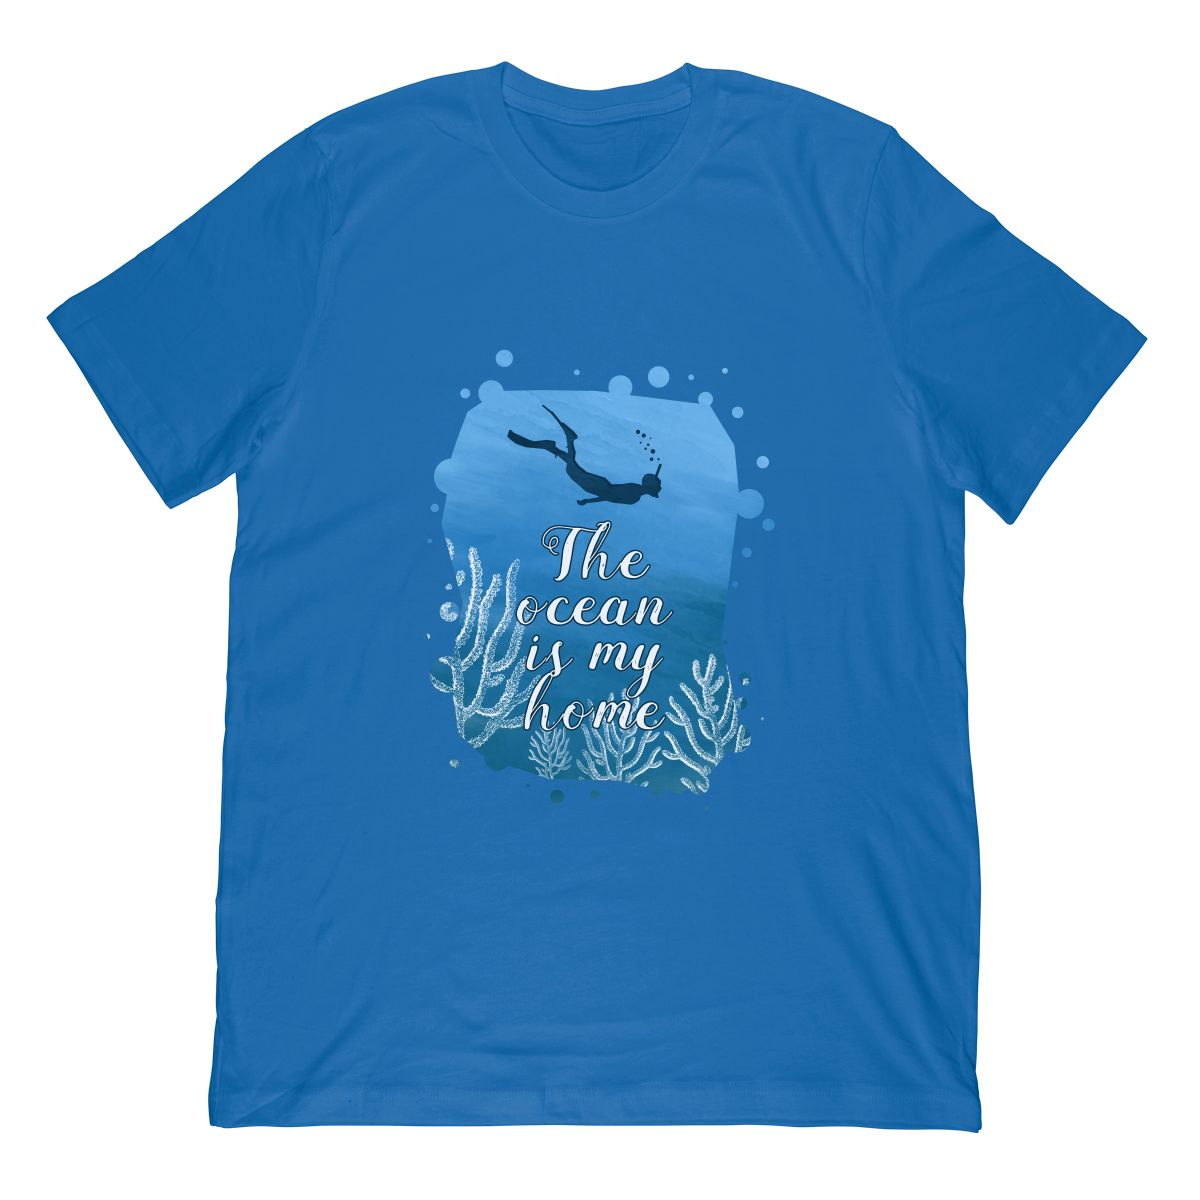 Snorkeling Shirt The Ocean is My Home